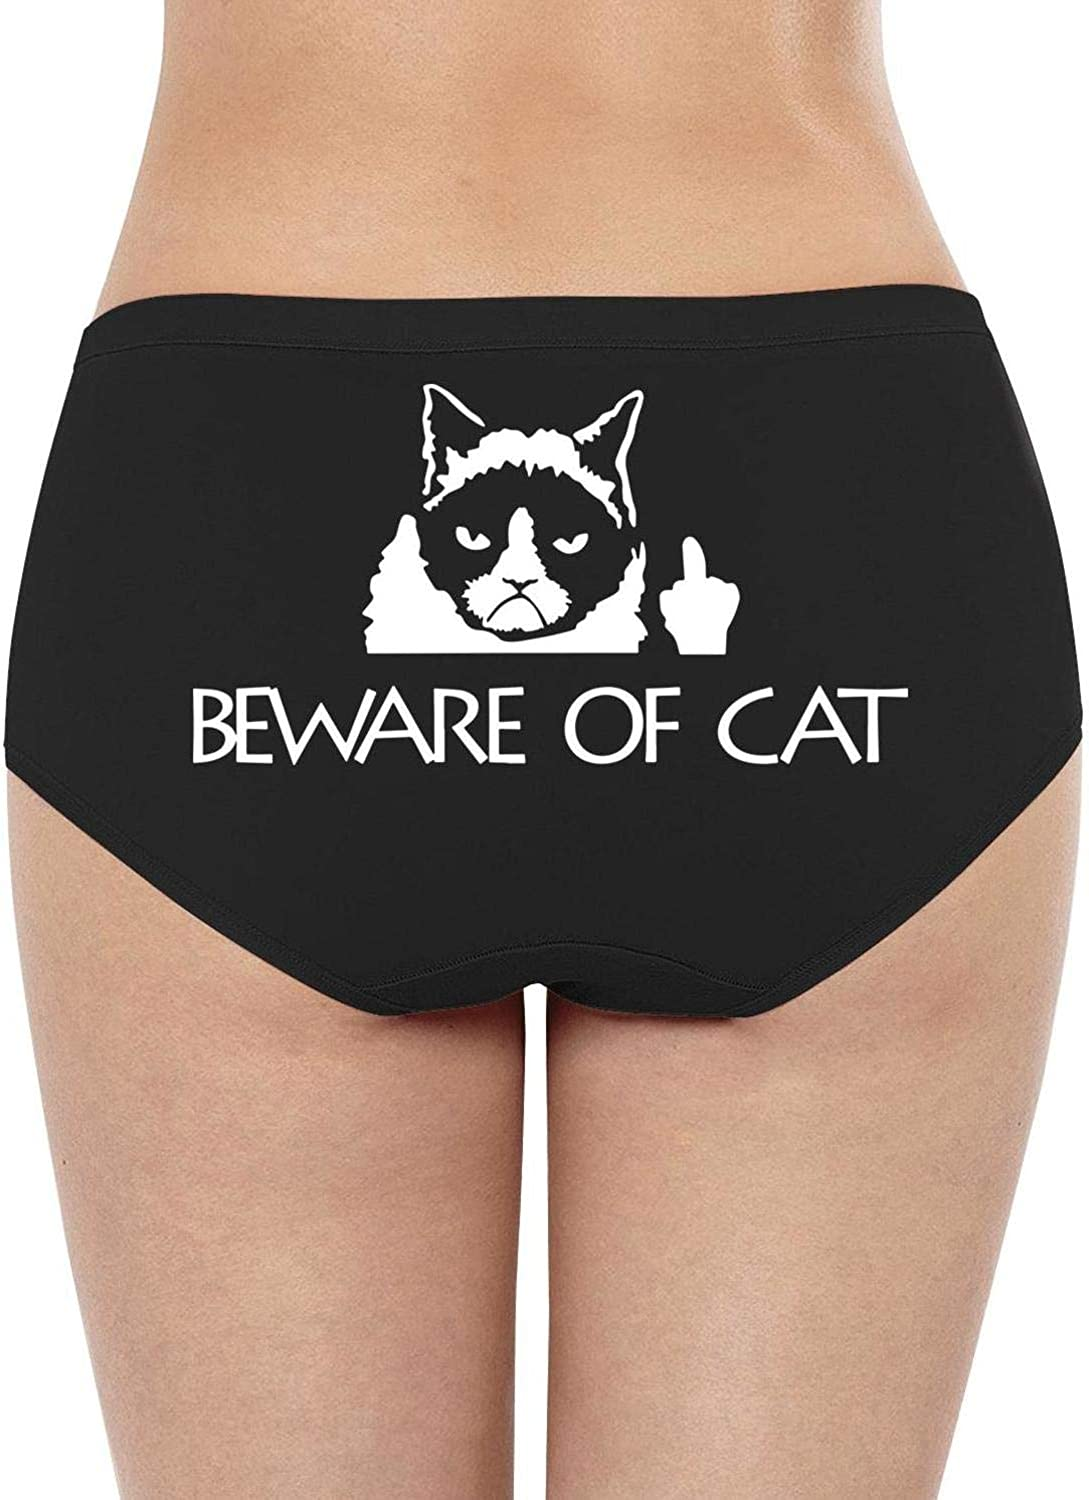 Panties Hipsters for Adult Ultra-Soft Soft Cotton Vintage String Panties yin yang Sign Cats Logo